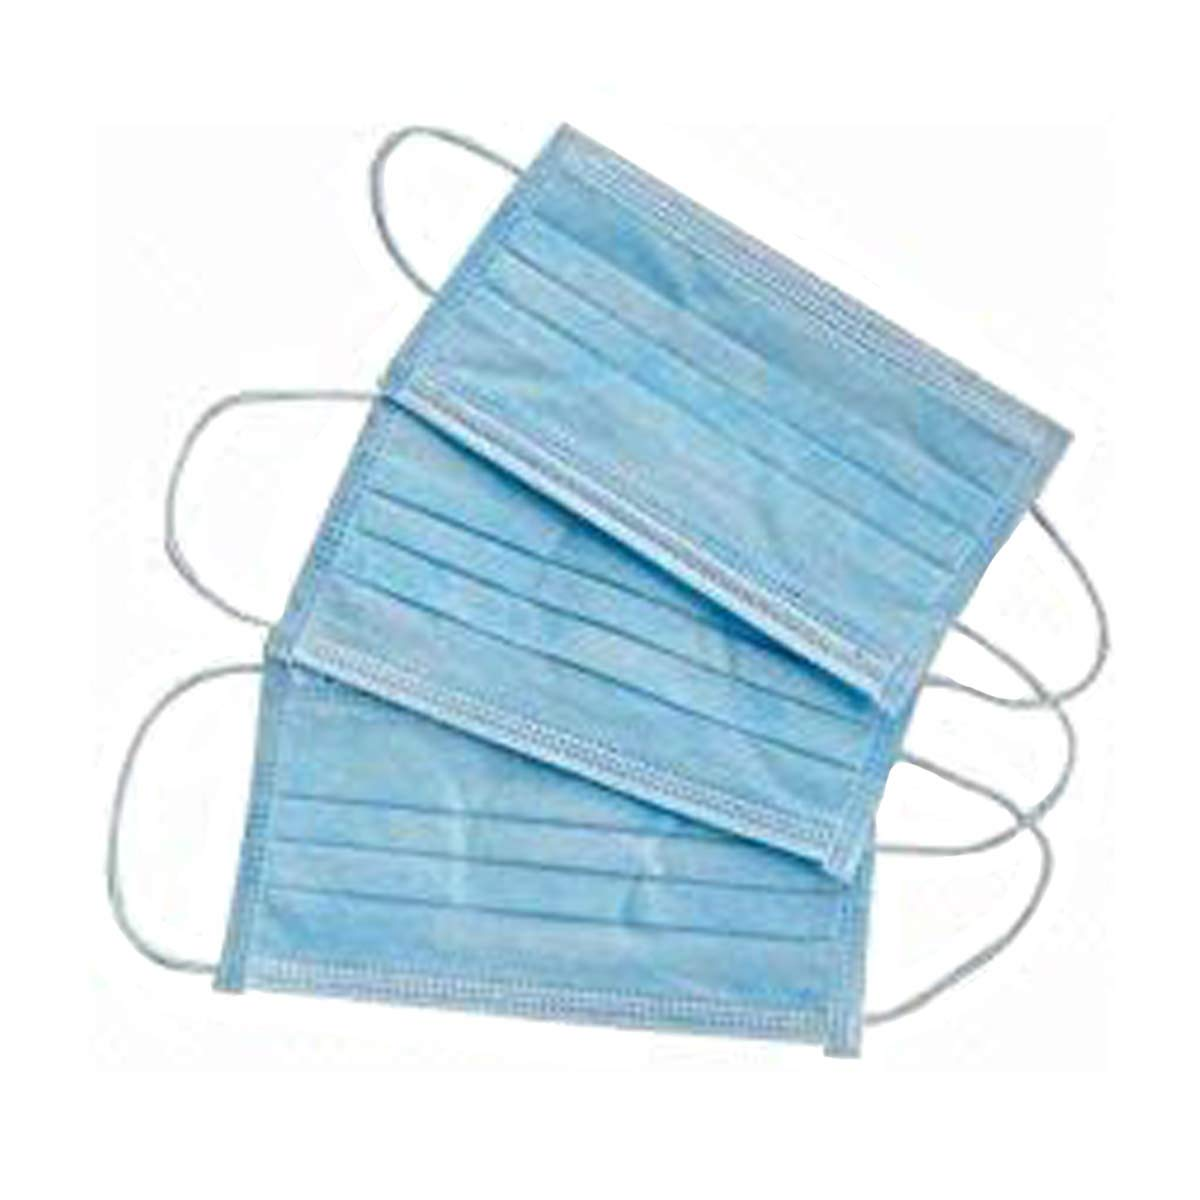 Ply Traders K Size free B Face Non-woven Surgical Three Mask